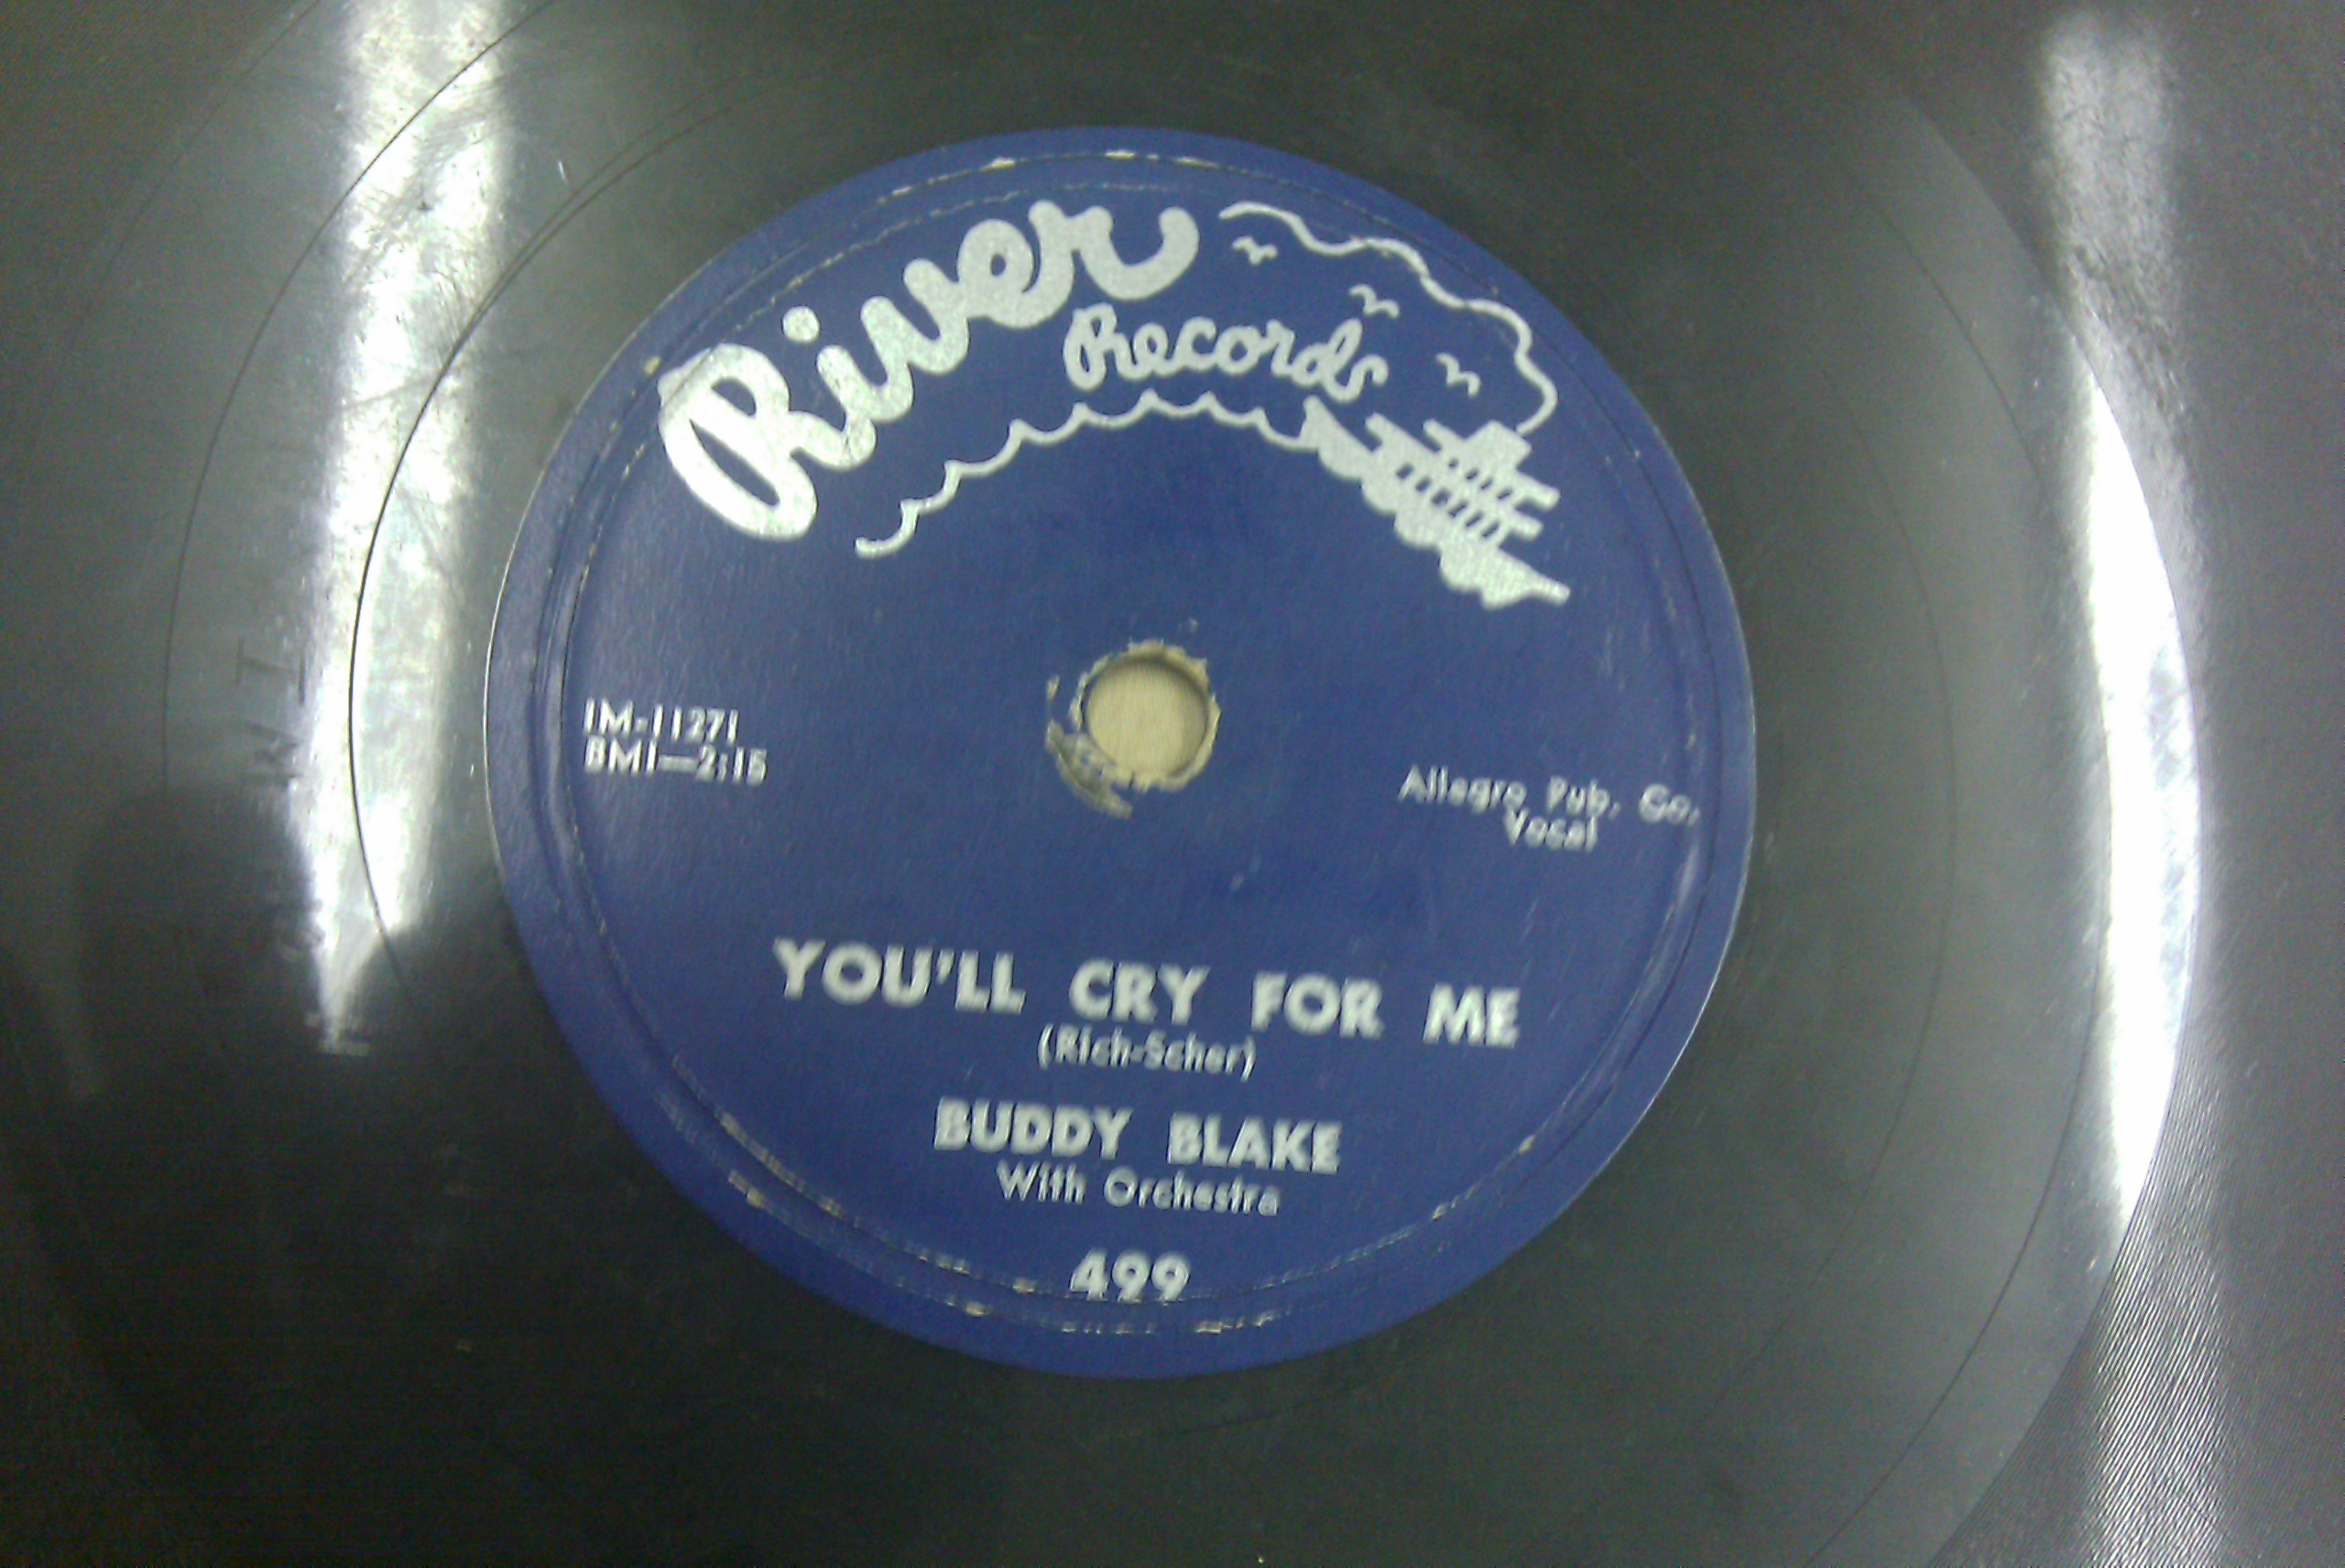 RIVER RECORDS 78 BUDDY BLAKE - ROSIE & BUDDY BLAKE - YOU'LL CRY FOR ME